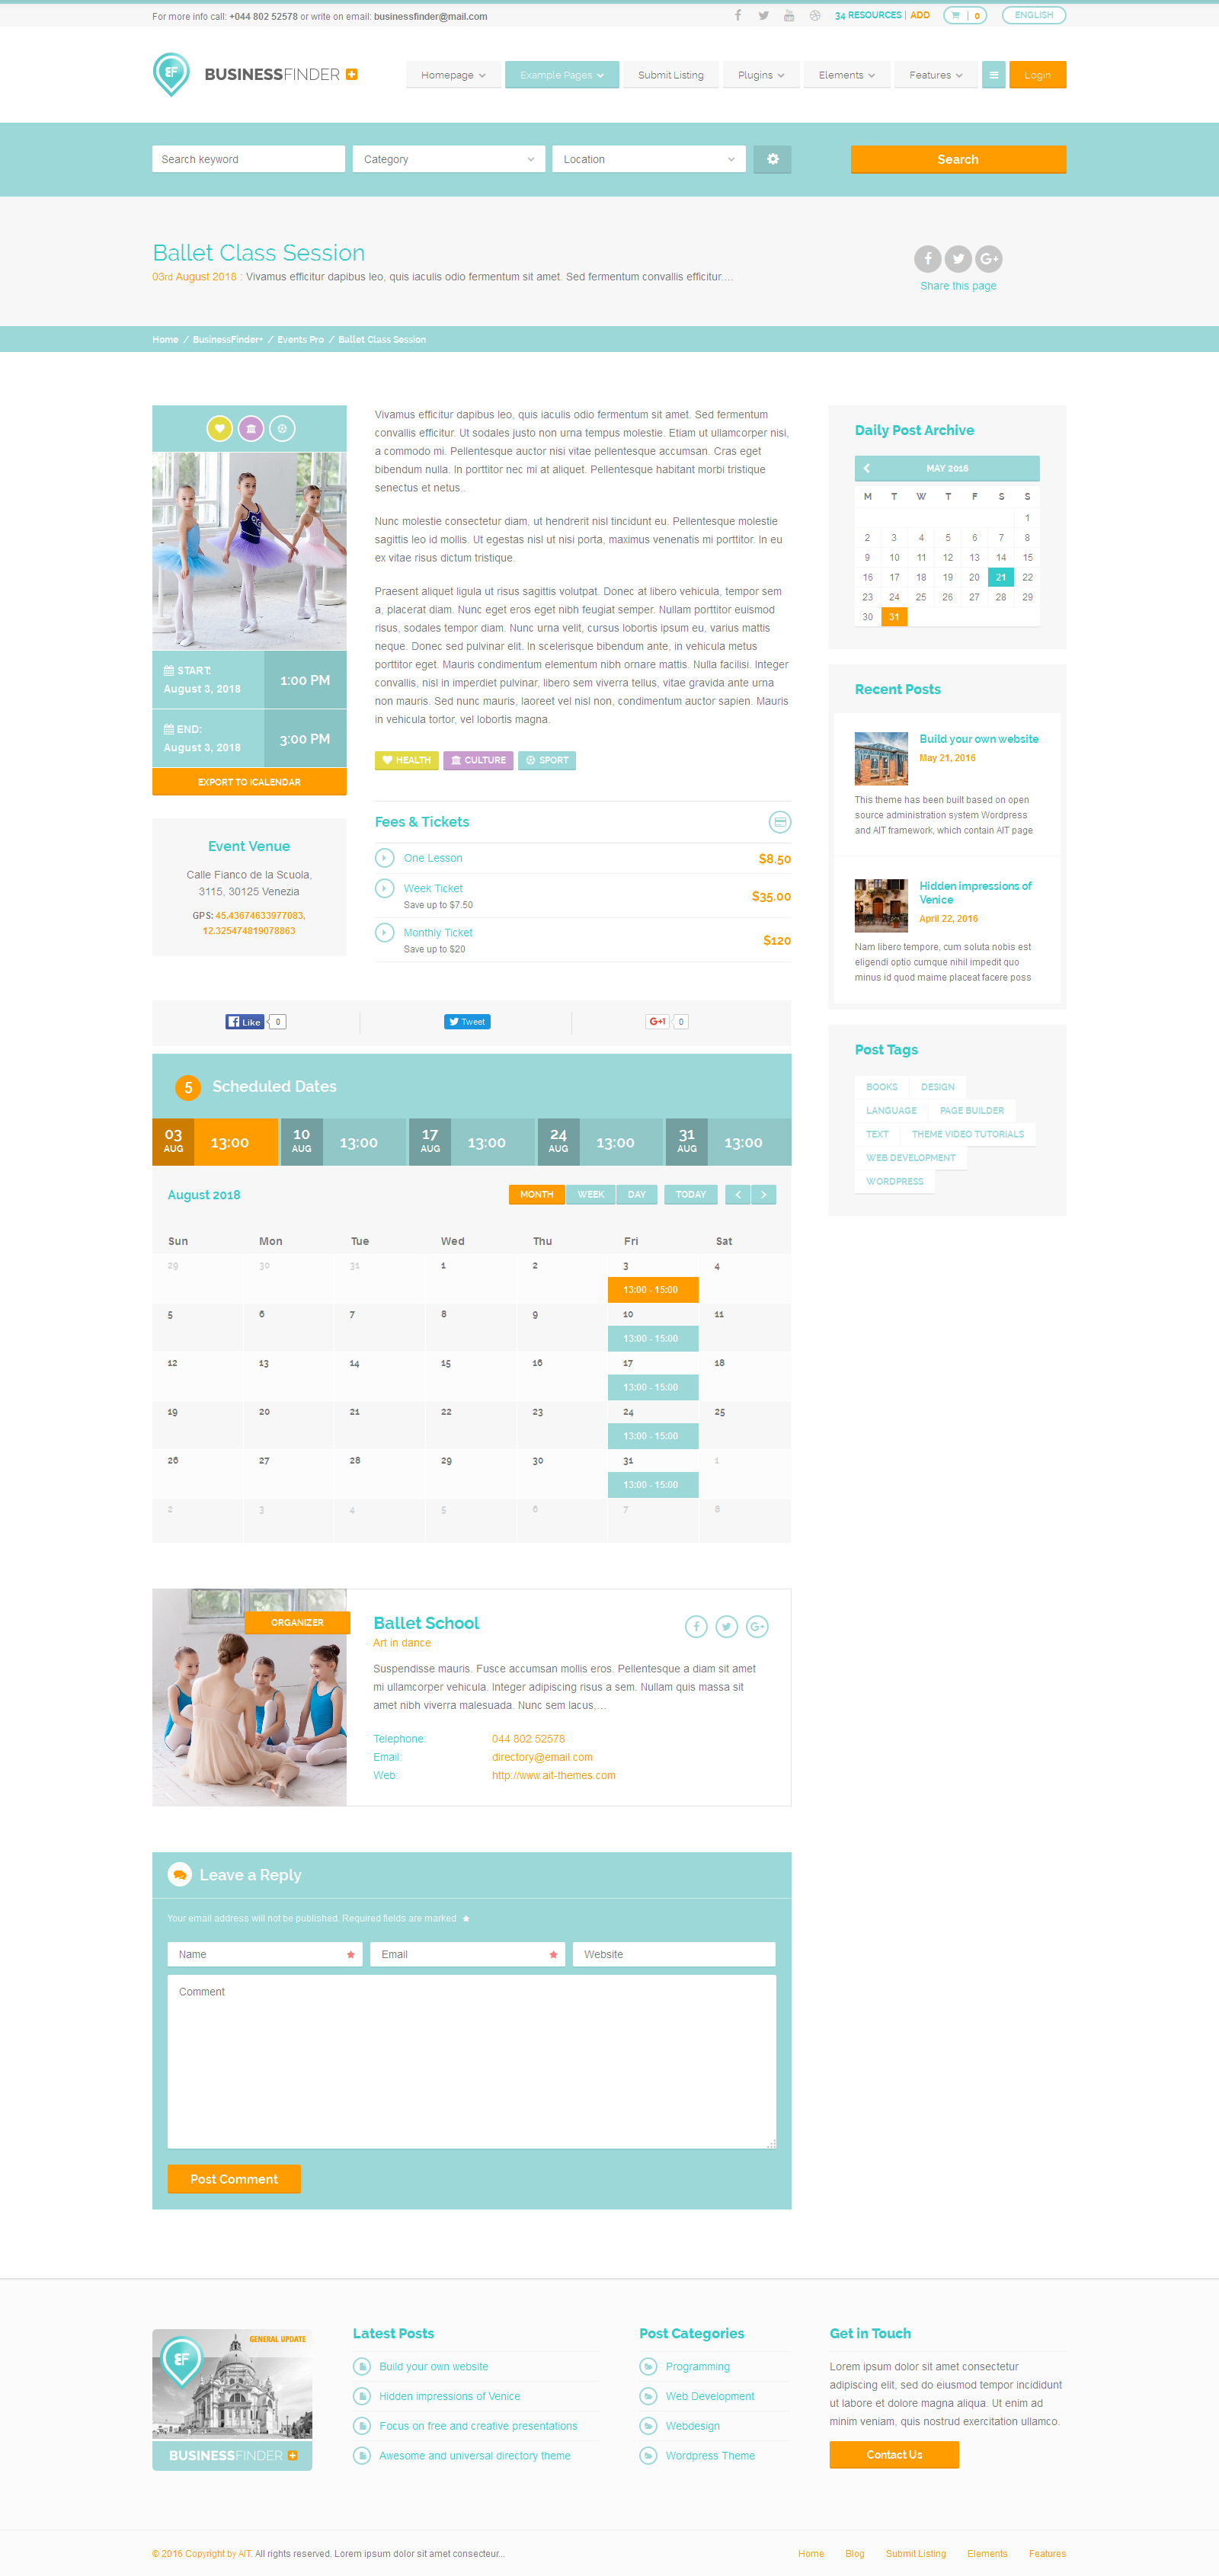 Business directory website themes pchelovod business directory website themes flashek Images